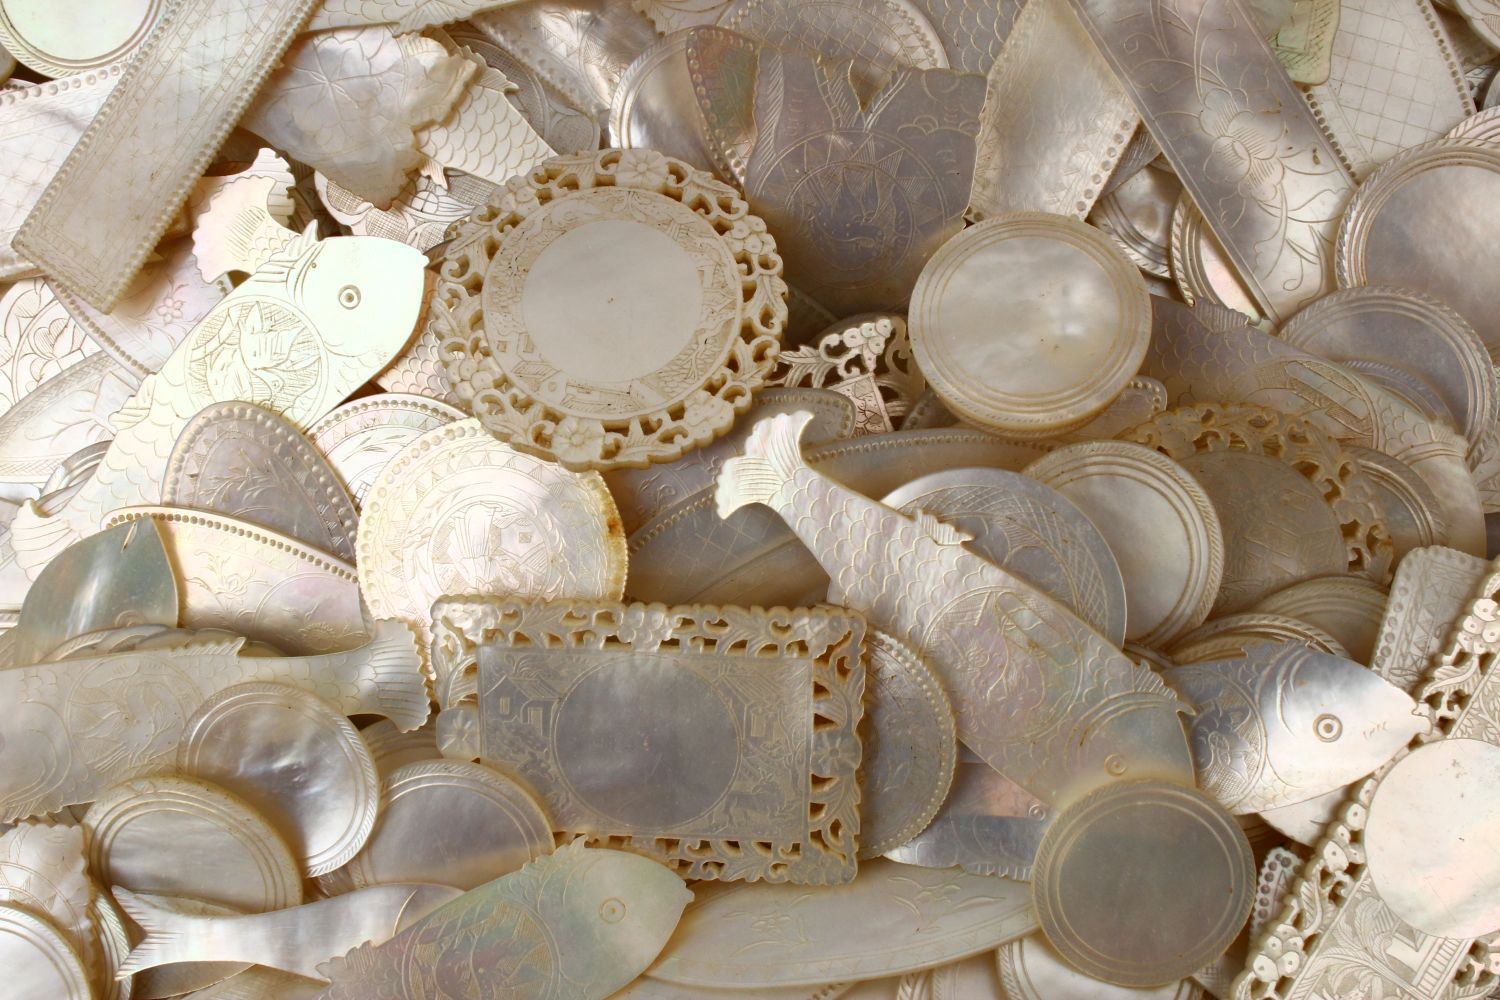 A QUANTITY OF 19TH CENTURY CHINESE CARVED MOTHER OF PEARL GAME COUNTERS, various styles an sizes. - Image 8 of 9